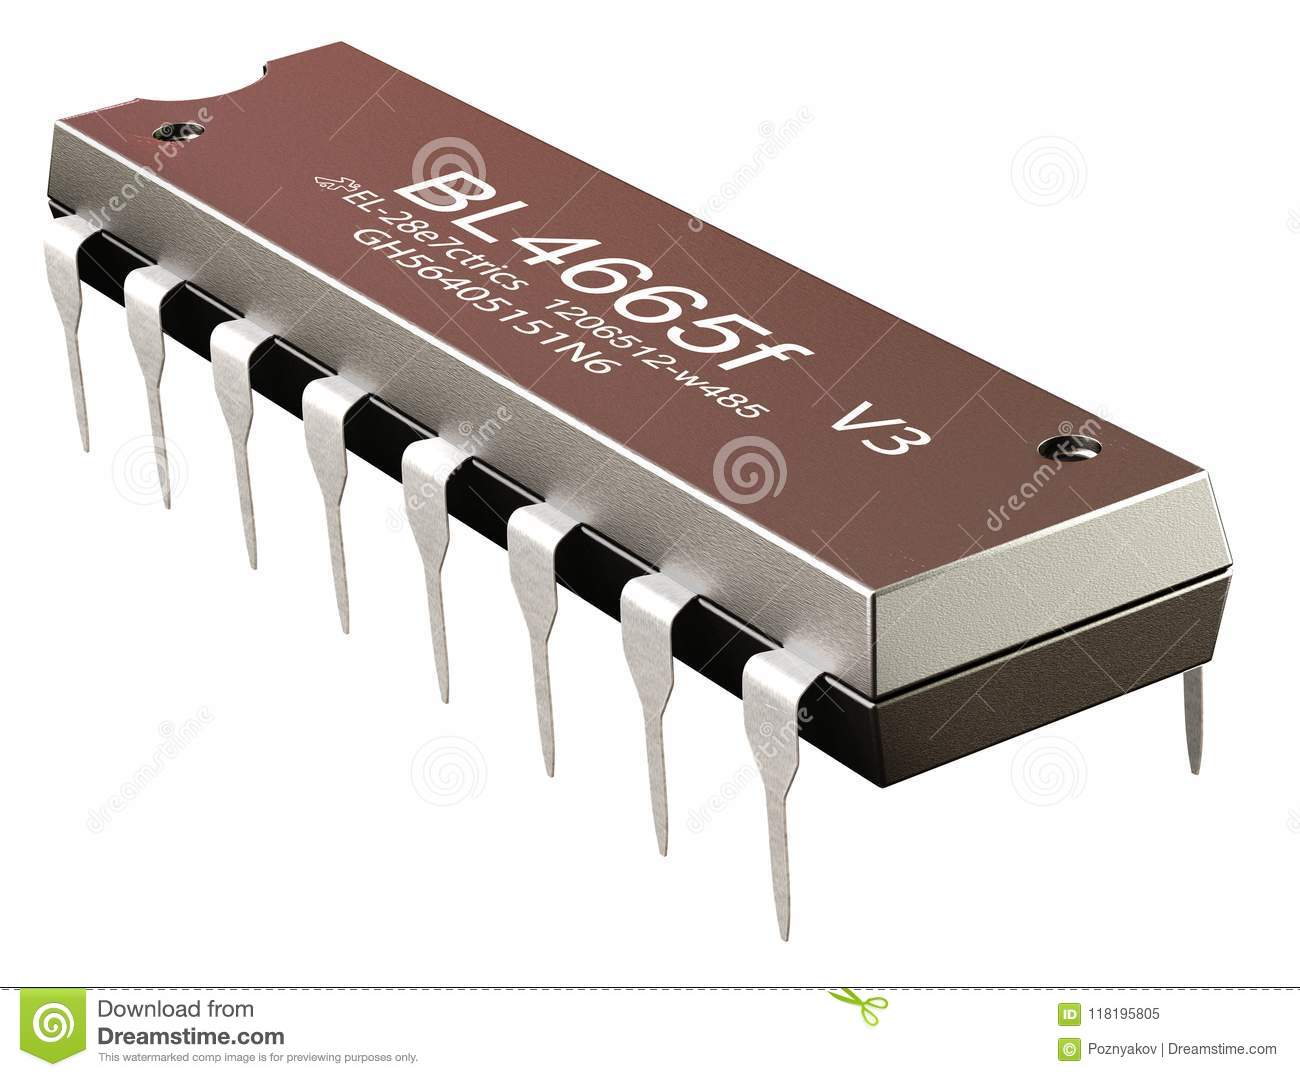 Integrated Circuit Or Micro Chip And New Technologies On Isolated Icintegrated Ic Component Electronic Computer Part Sapplication Specific Asic Cmos Of Llinear Voltage Regulators